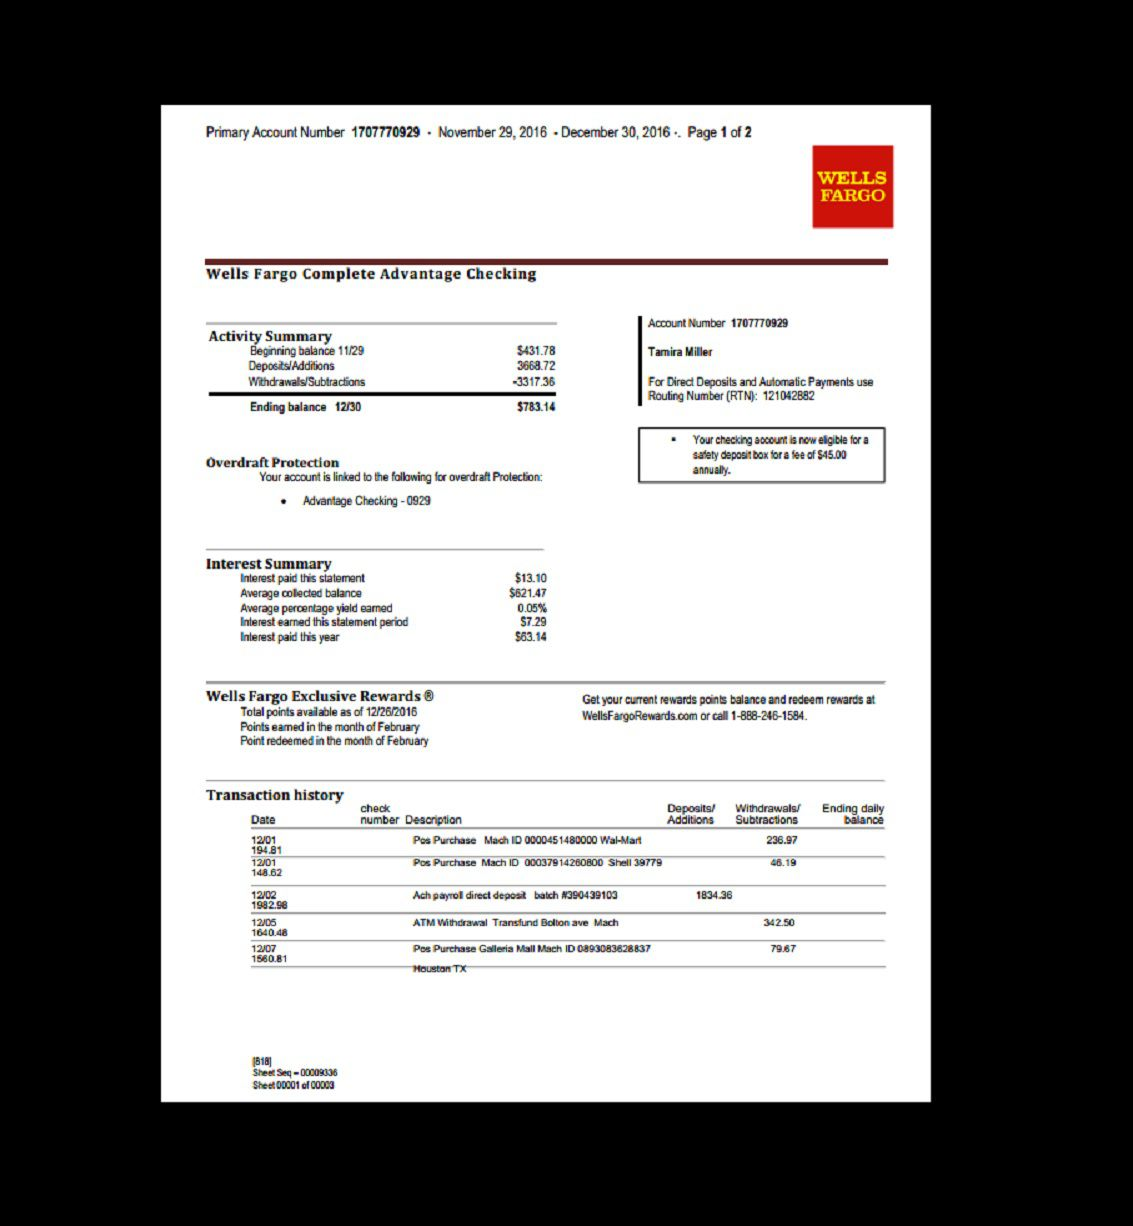 005 Exceptional Well Fargo Bank Statement Template High Def  Fillable EditableFull